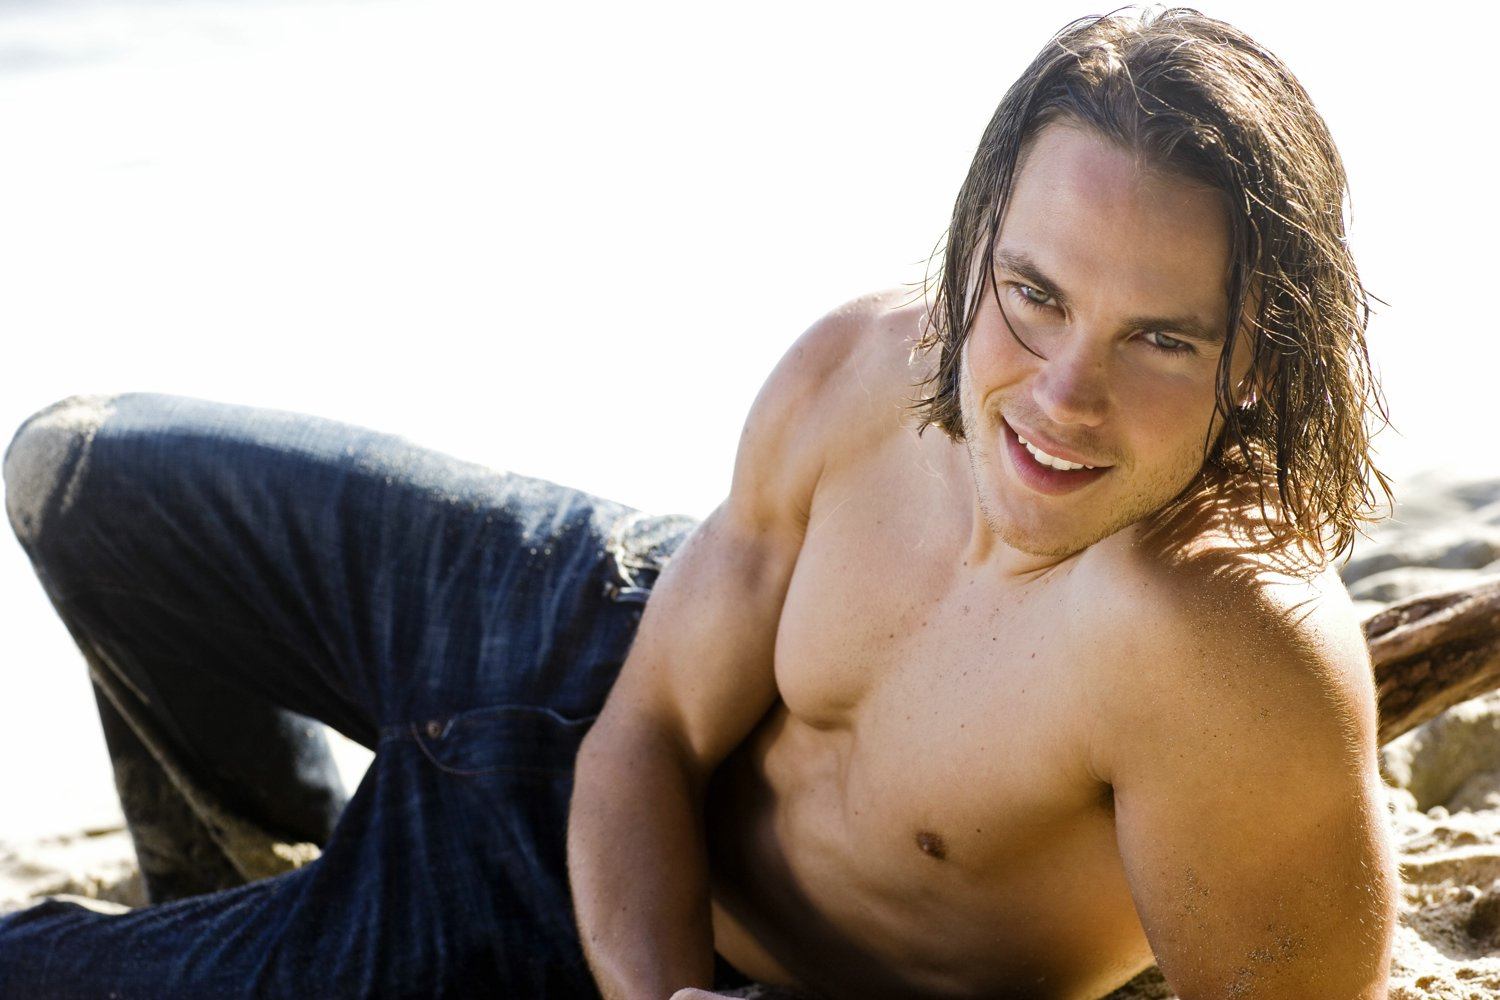 Interview with Friday Night Lights hottie Taylor Kitsch